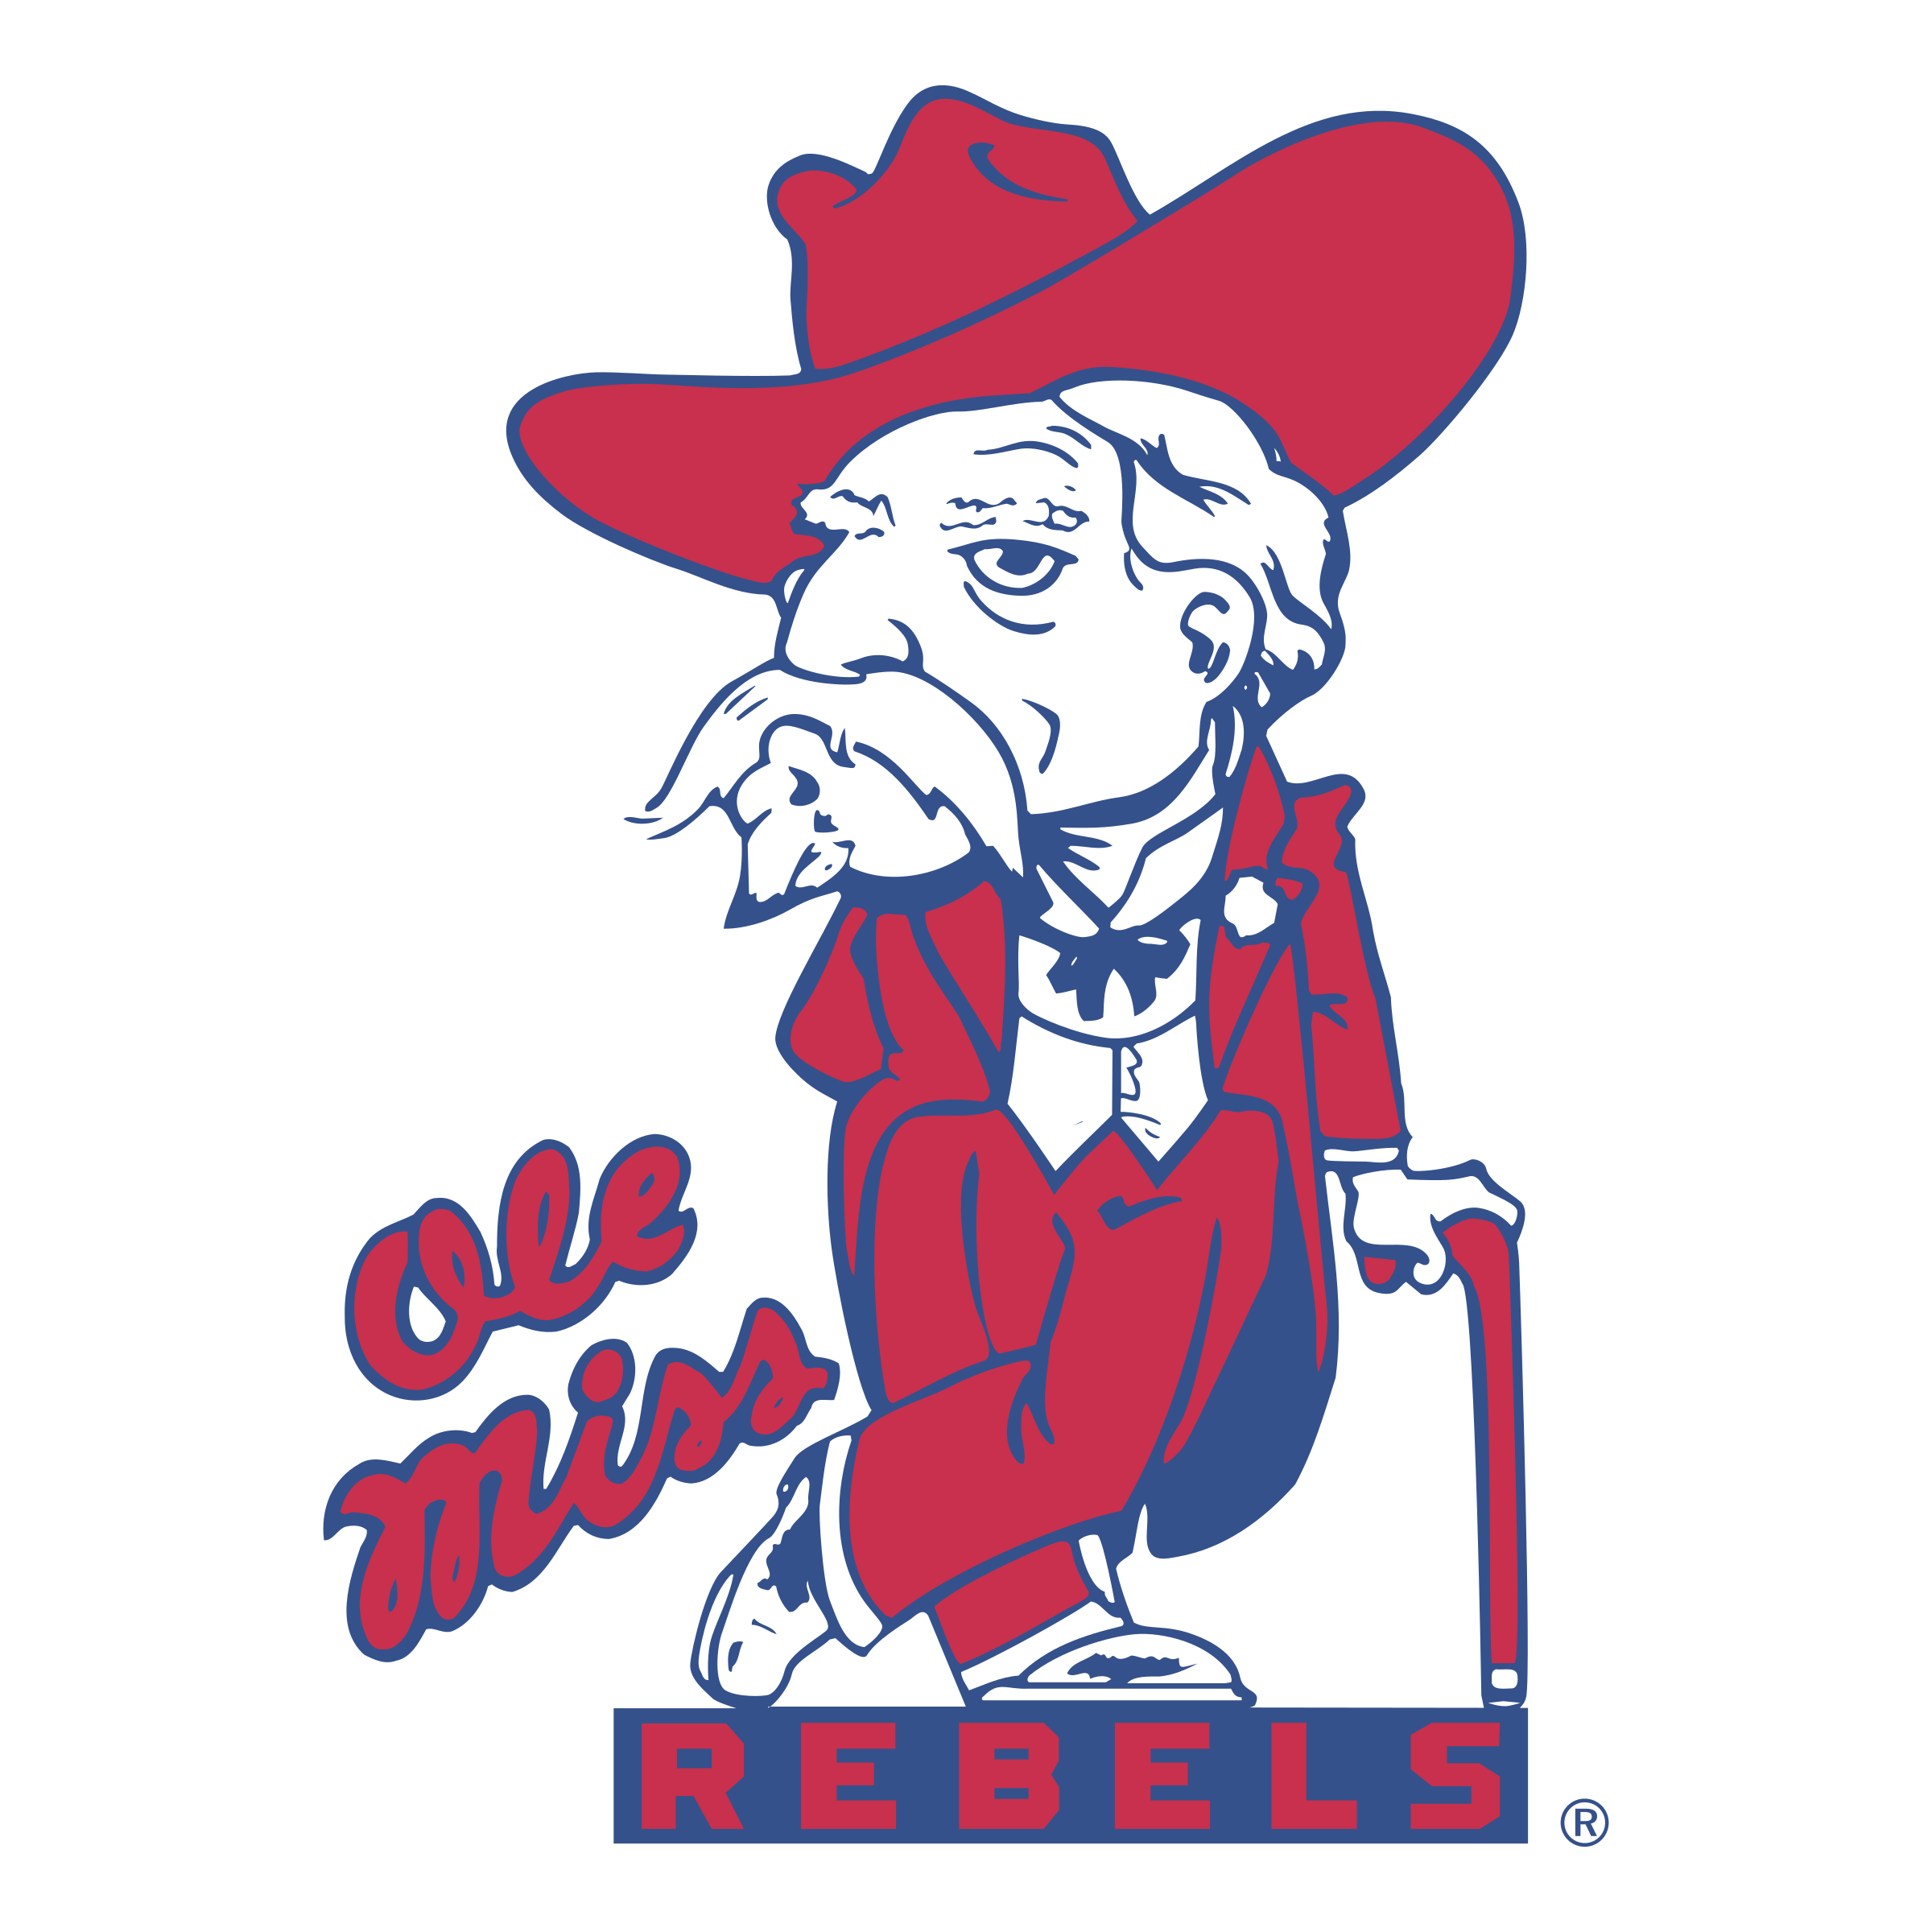 Ole miss football clipart royalty free download Ole Miss Rebels Logo PNG Transparent & SVG Vector - Freebie Supply royalty free download